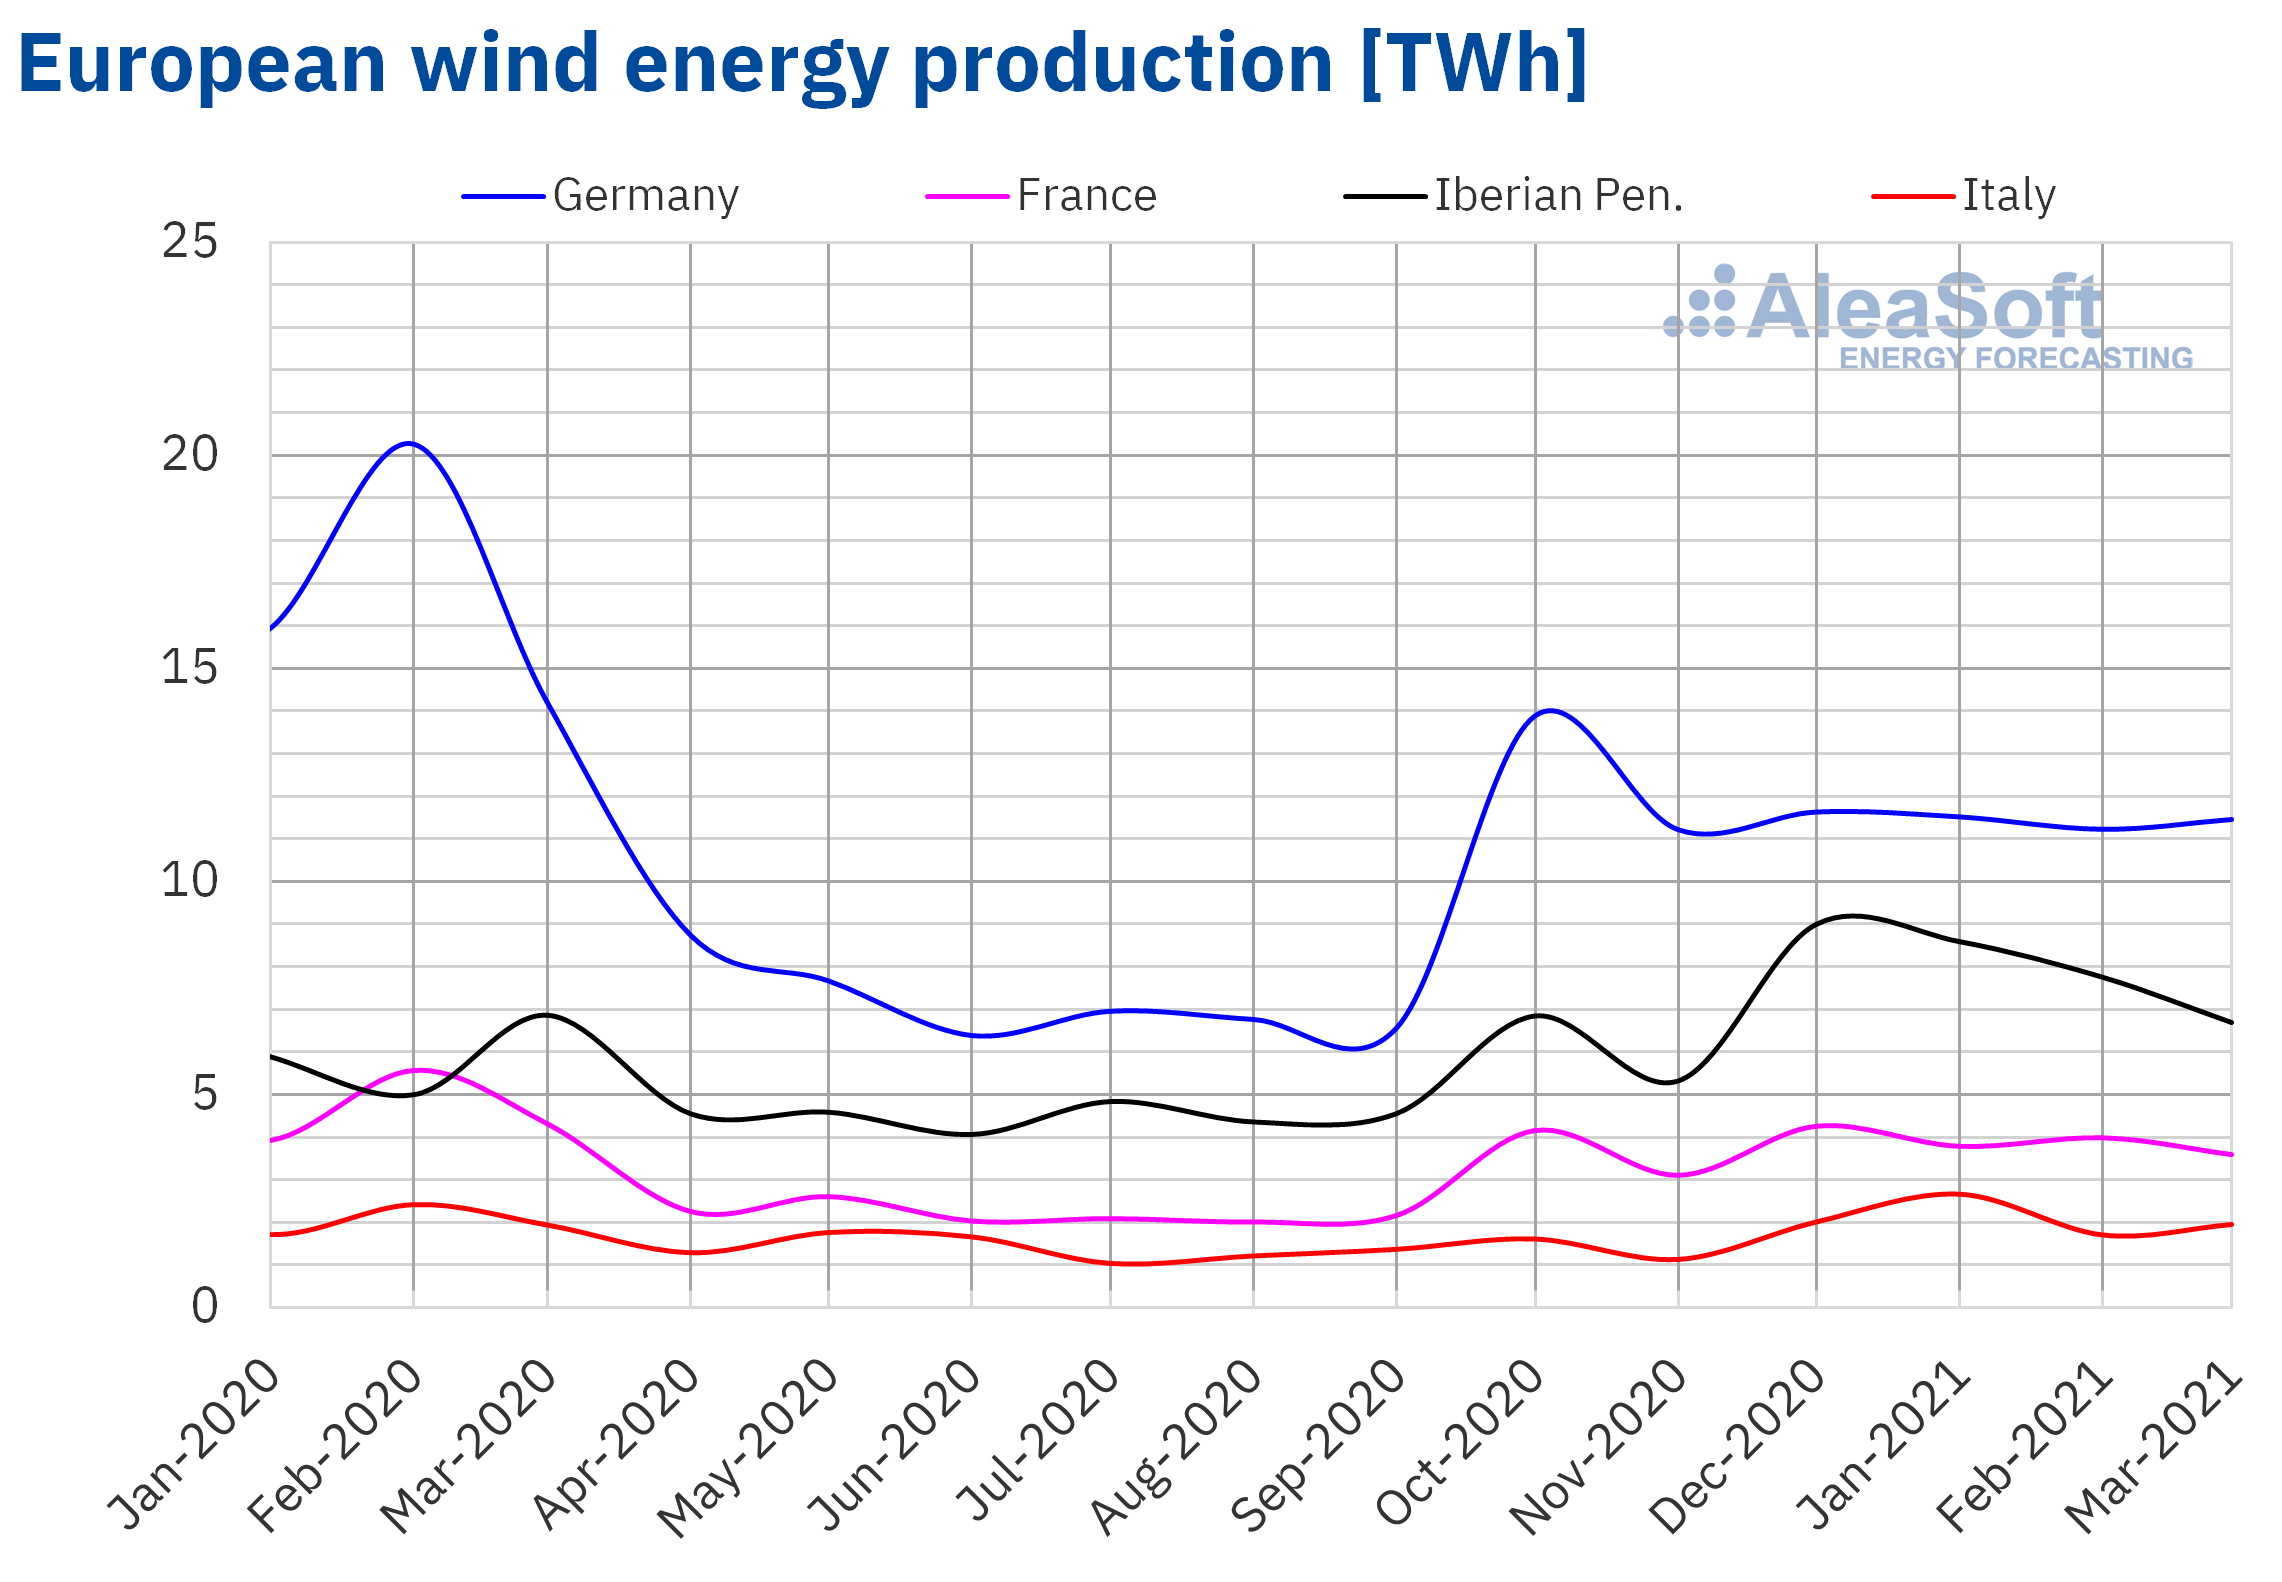 AleaSoft - Monthly wind energy production electricity Europe